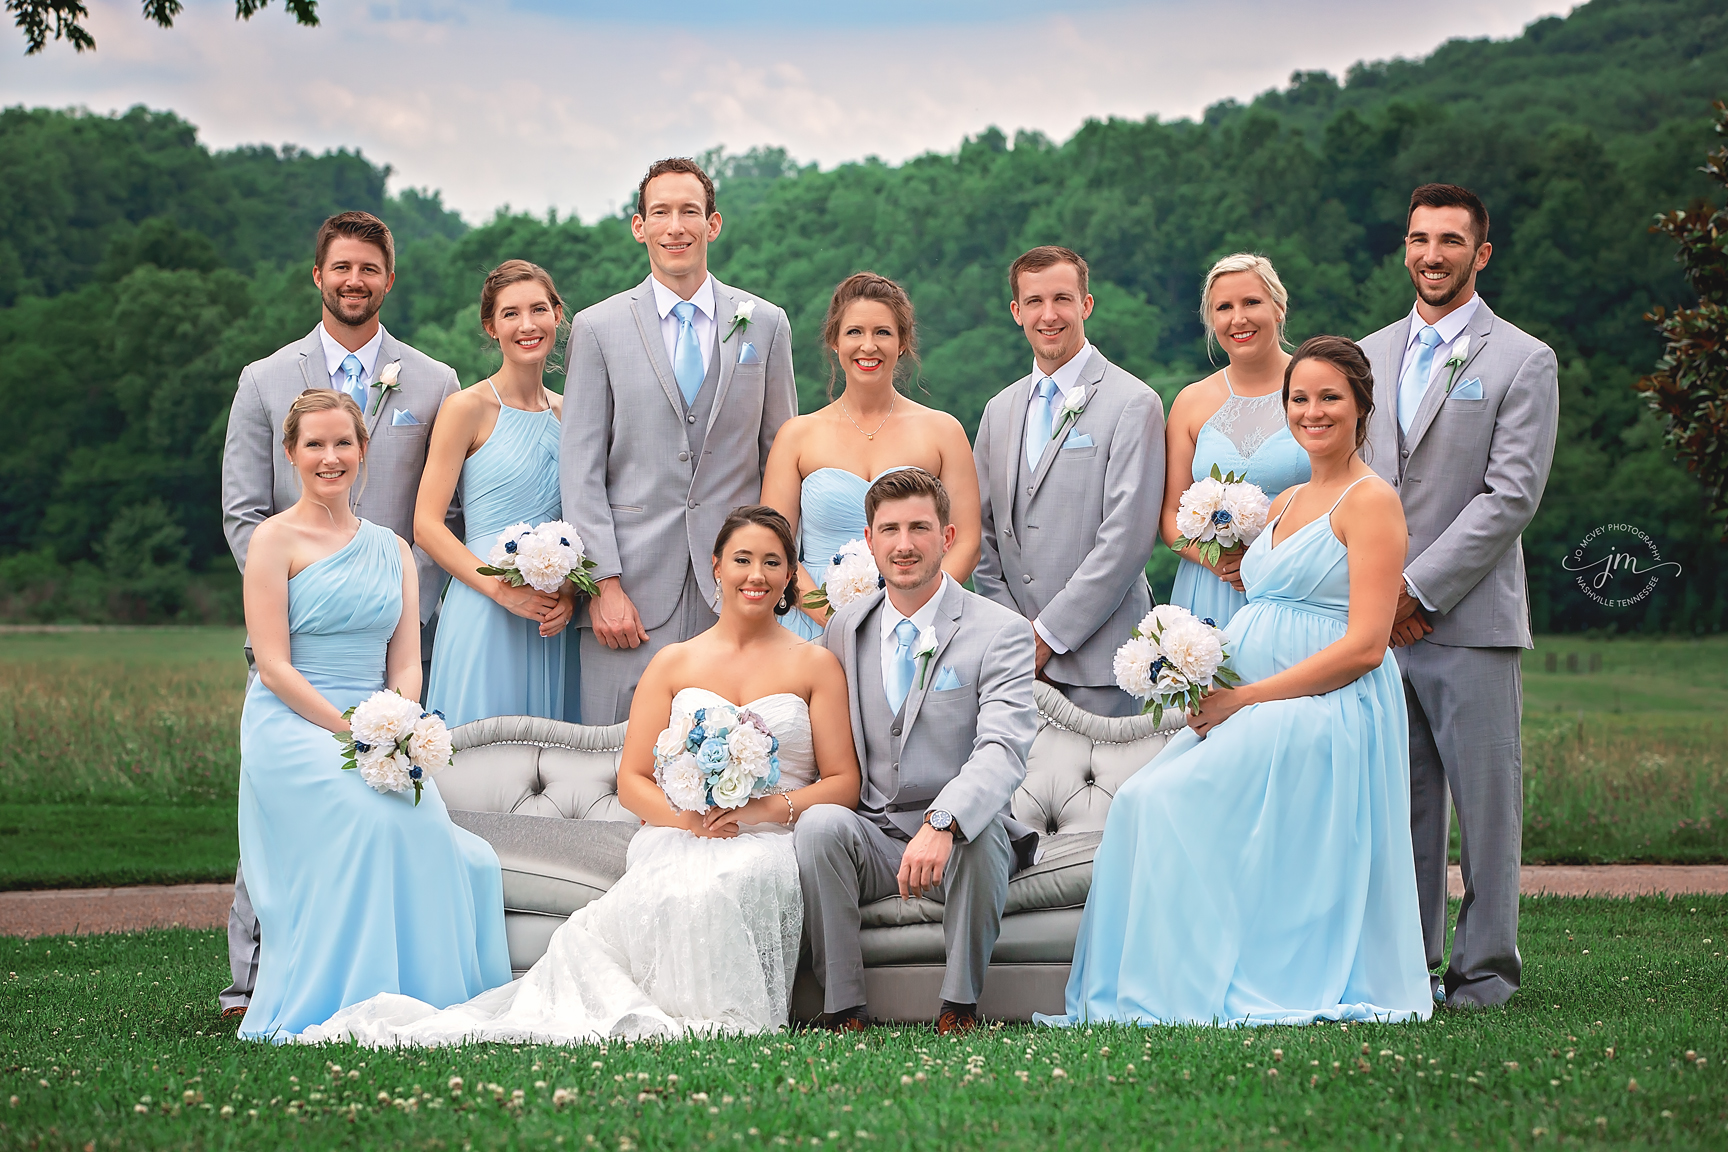 Bridal Party at Rock Creek Farms in Gallatin, TN - Nashville Wedding Photographer